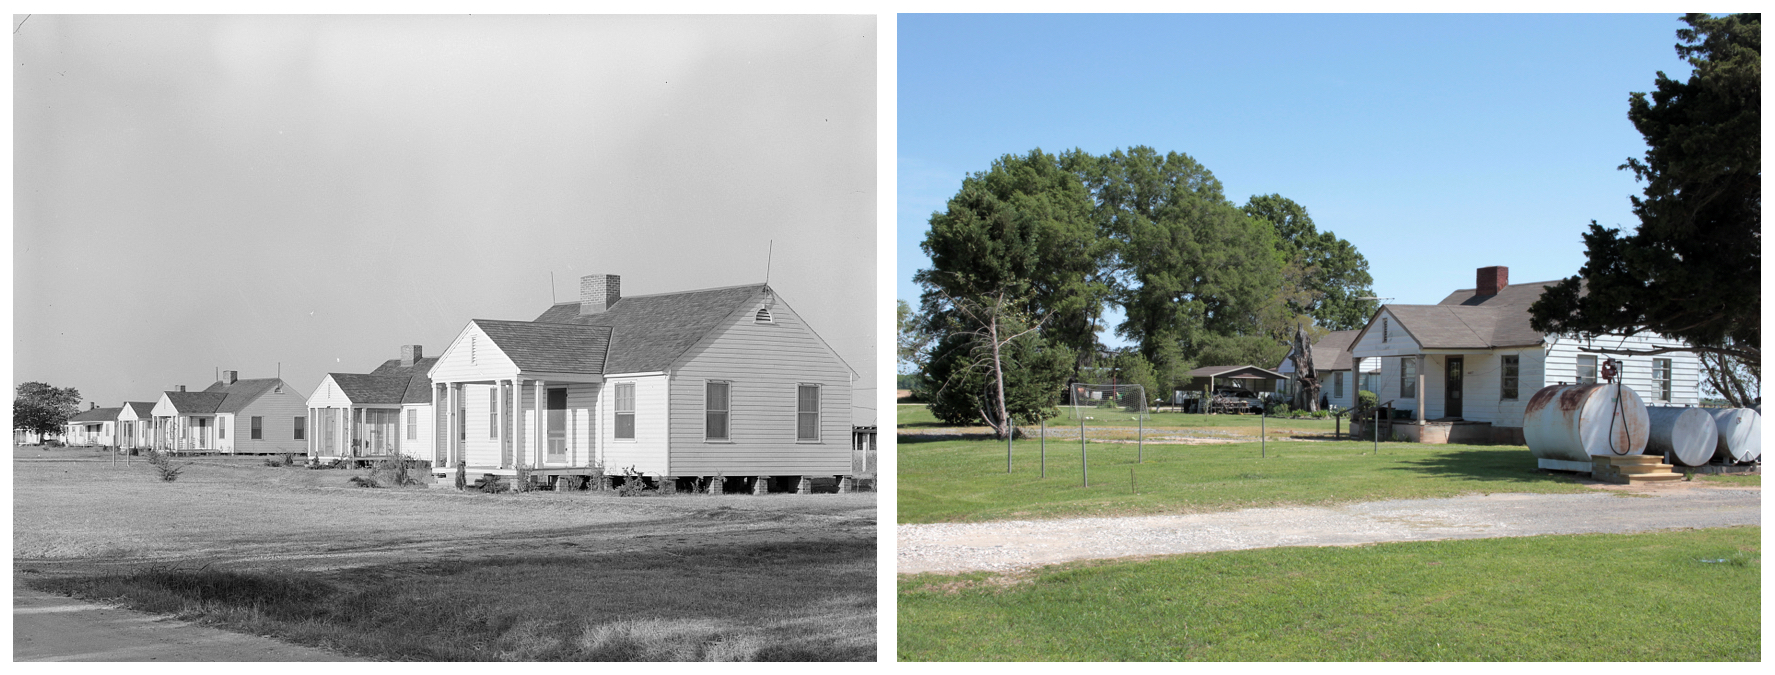 Left: Types of houses. Lake Dick Project, 1938. Russell Lee.  Right: Remaining houses, 2018. James Matthews